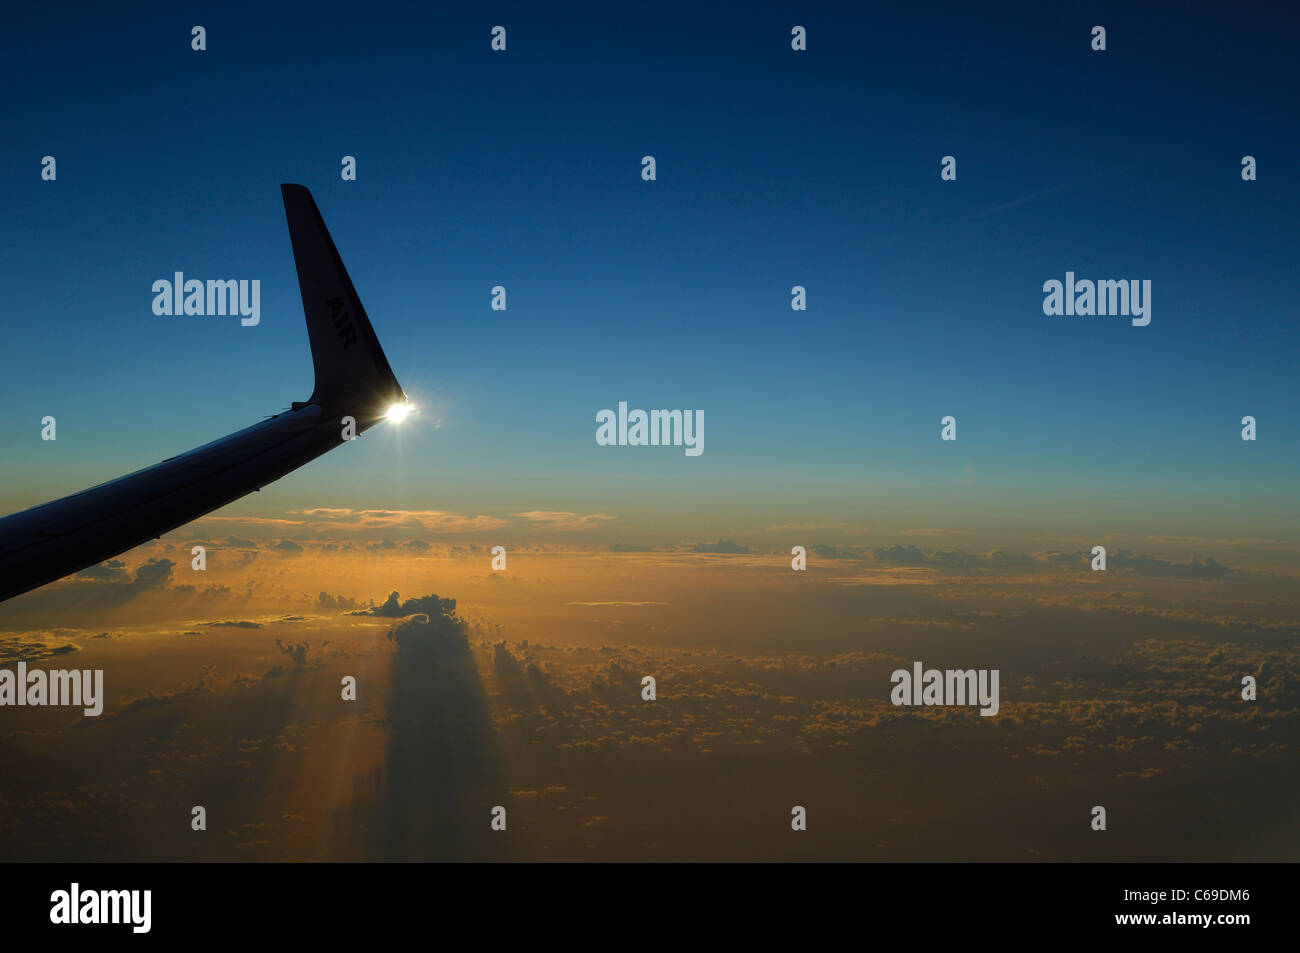 Wing tip of Boeing 737-800 airliner plane at sunset over Atlantic Ocean - Stock Image